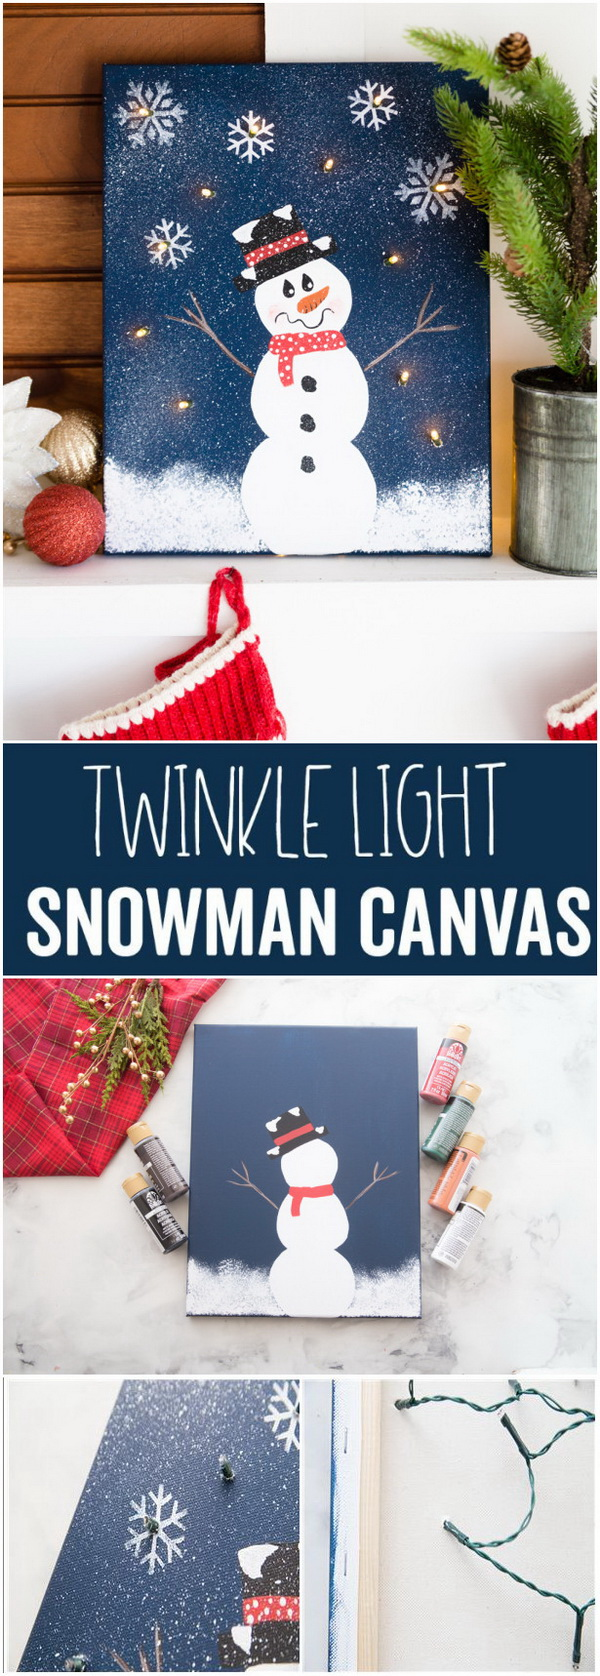 DIY Lighted Snowman Canvas. This is such a creative and adorable canvas with twinkle lights and the perfect way to add some holiday cheer to your mantel! You can also make several for Christmas gifts!